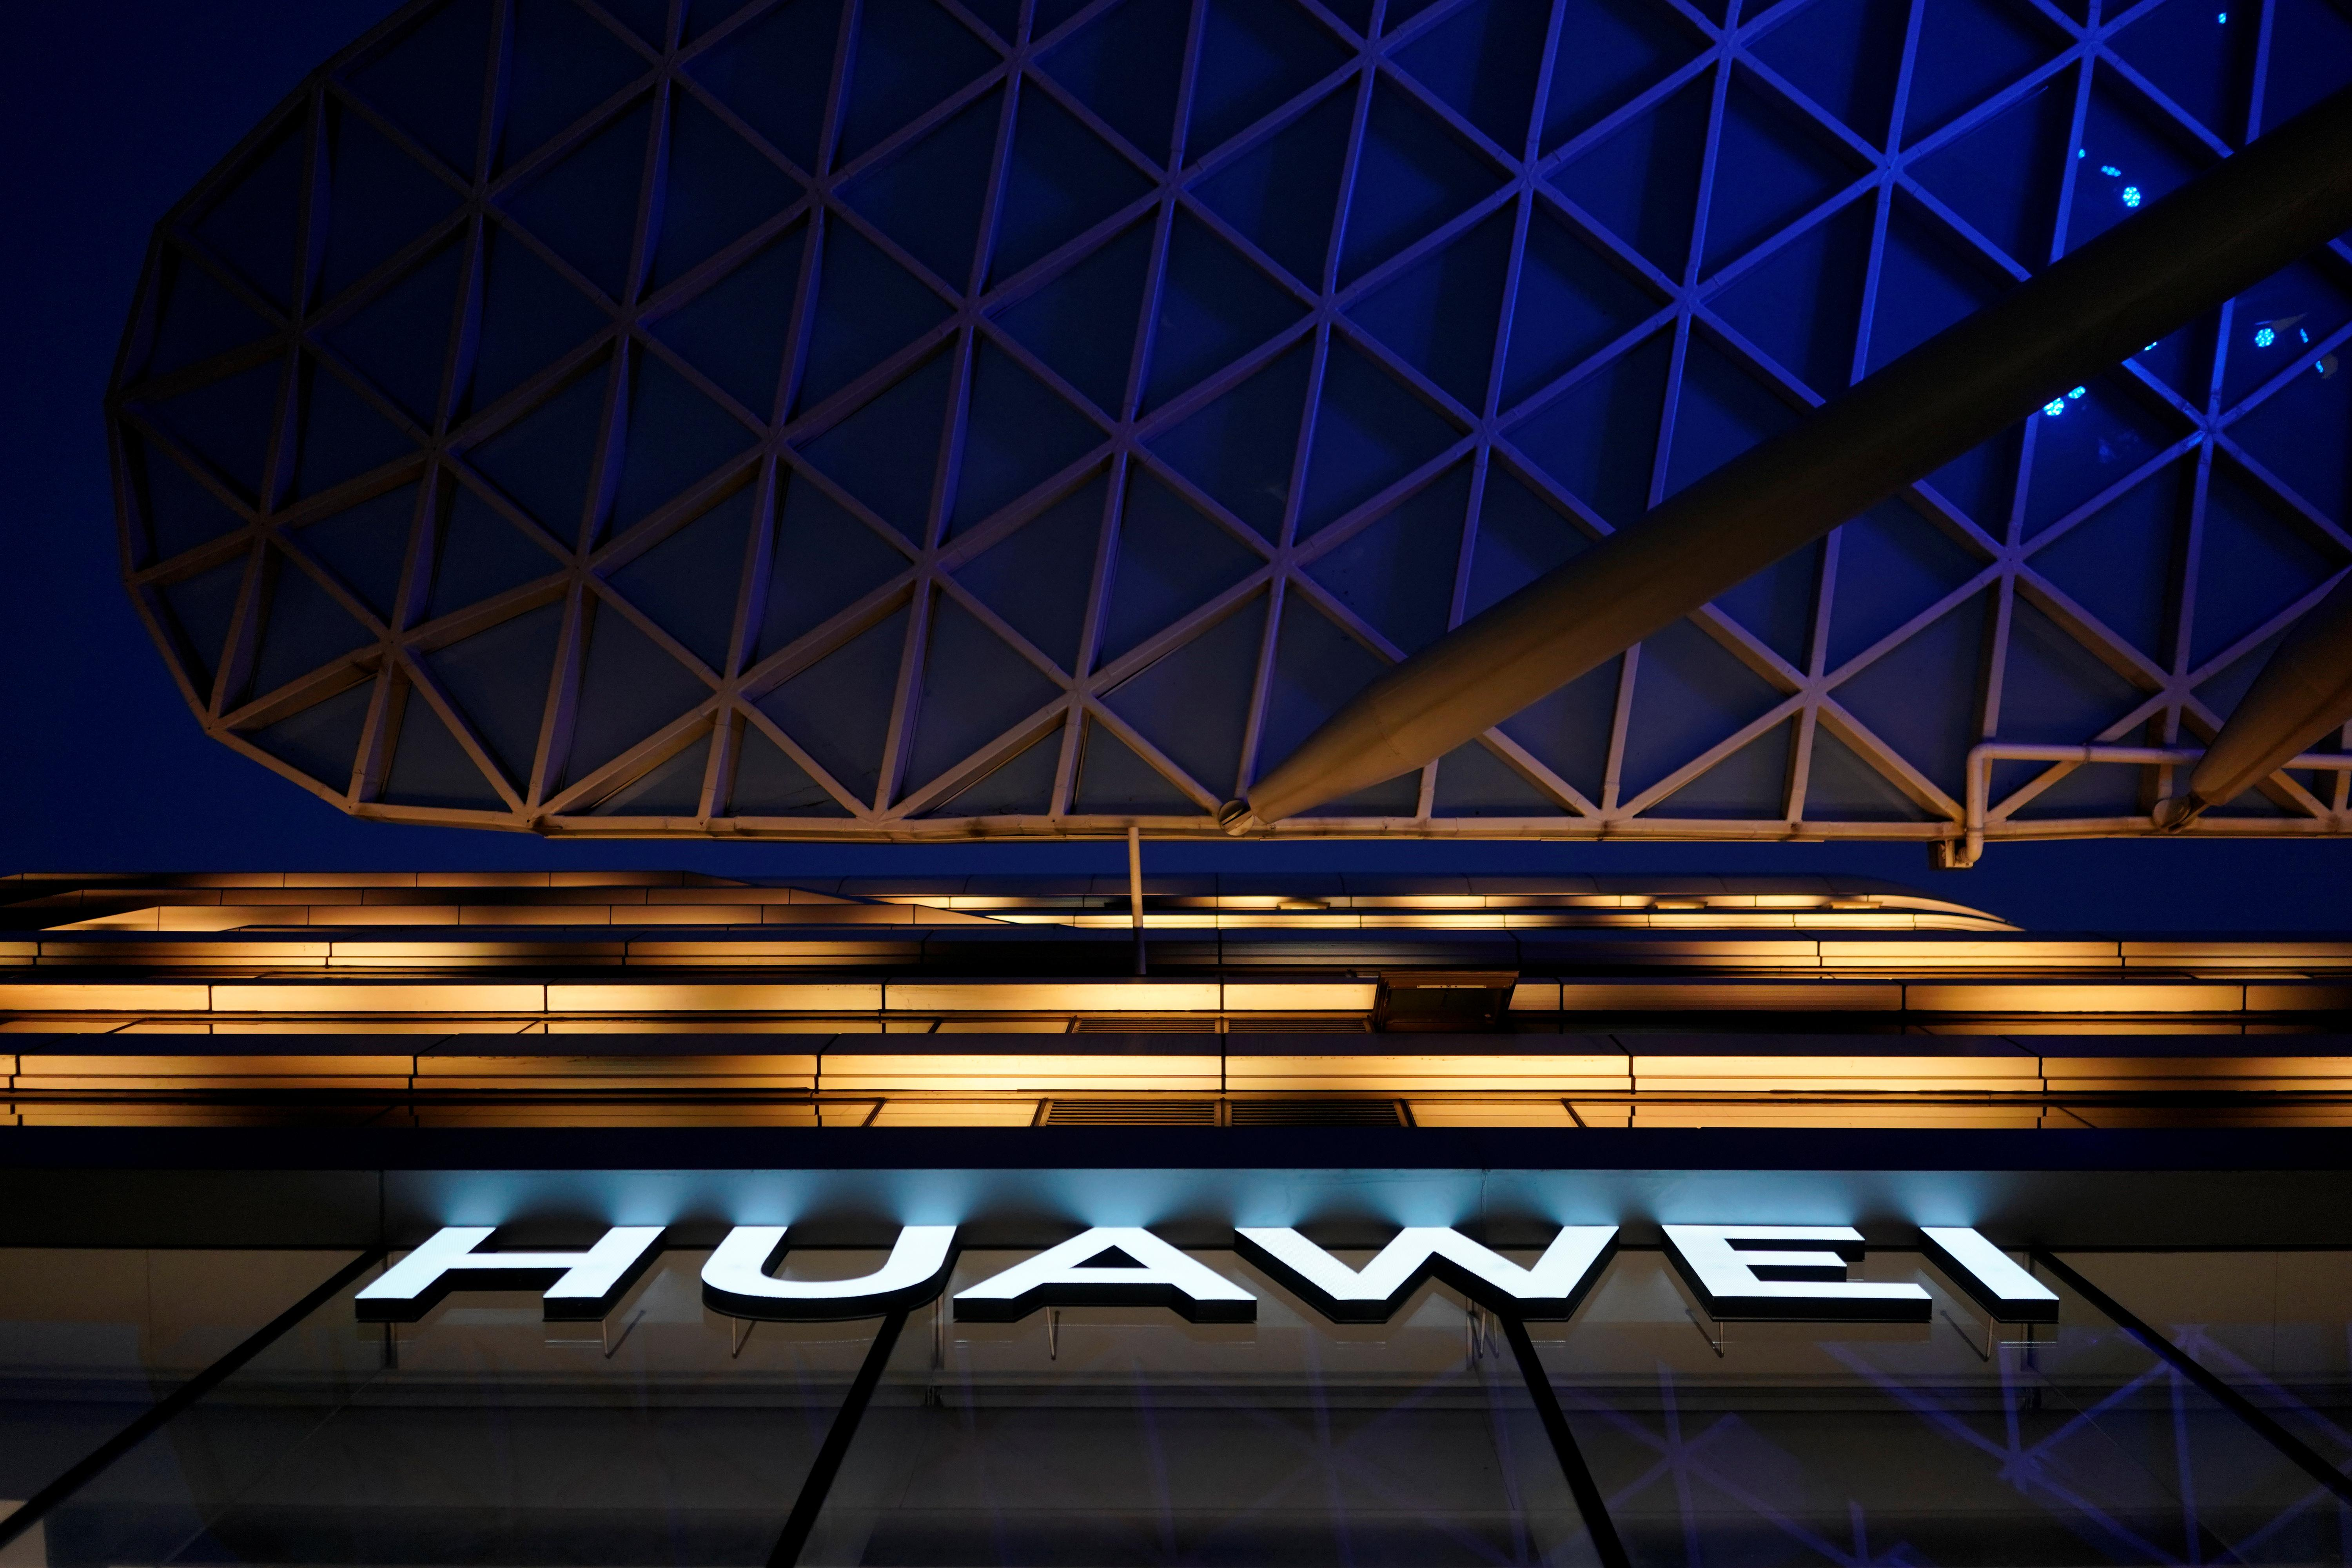 Europe's 5G to cost $62 billion more if Chinese vendors banned: telcos